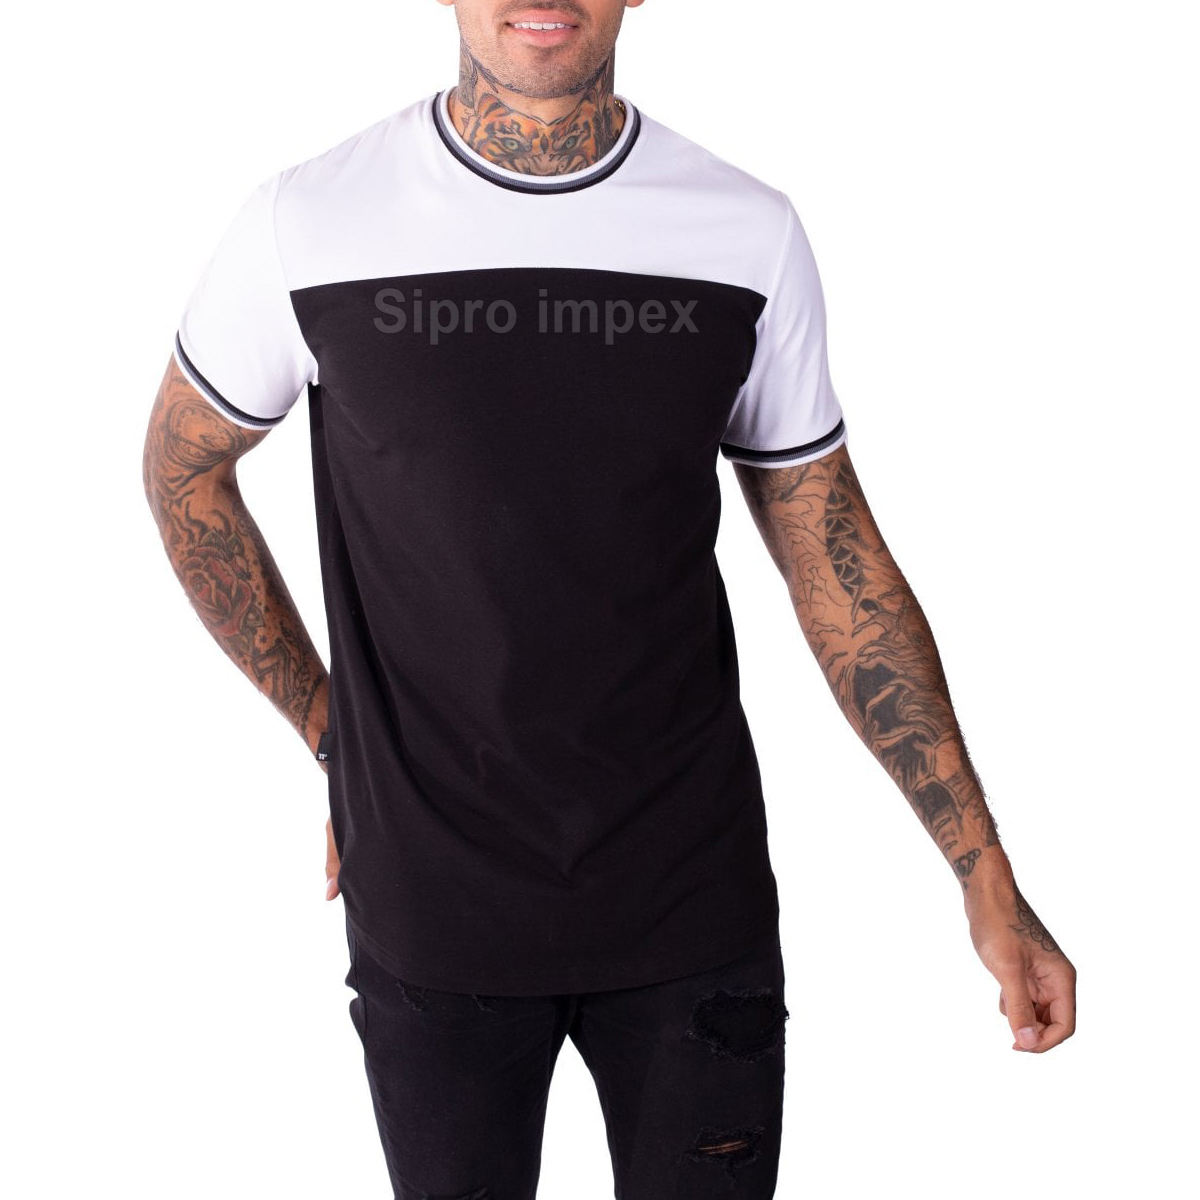 Wholesale gym CLothing 100% Cotton 2020 hemp t-shirts hand casual t shirts for men